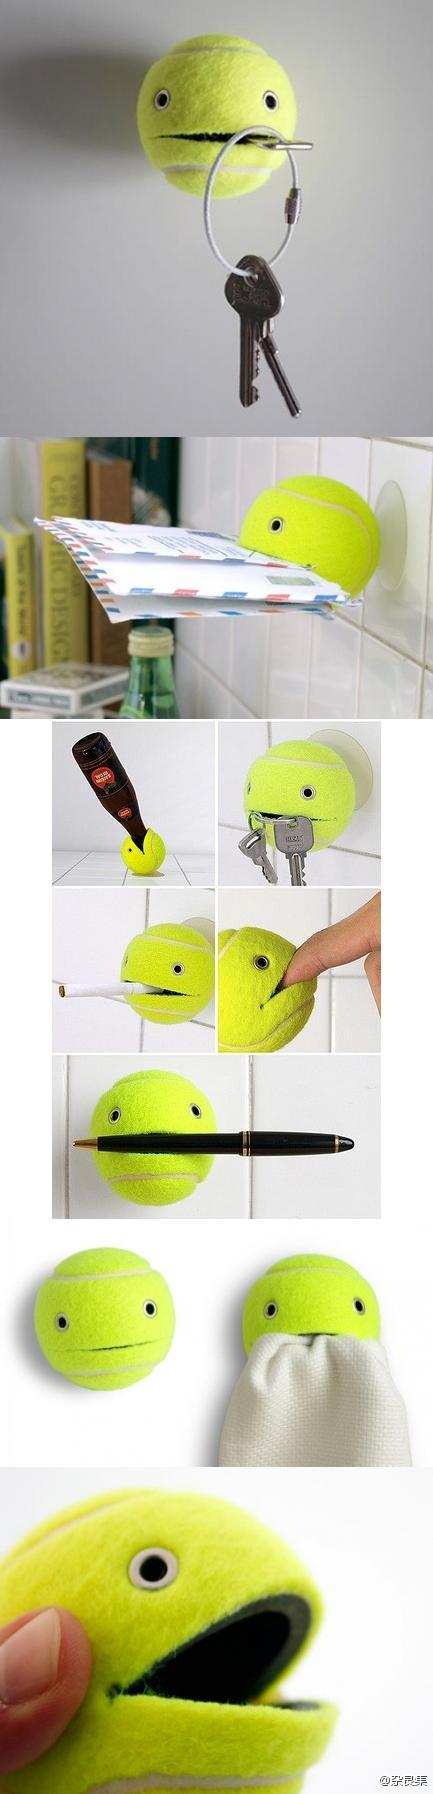 Tennis Ball Helper Accessories Do-It-Yourself Ideas Recycled Plastic